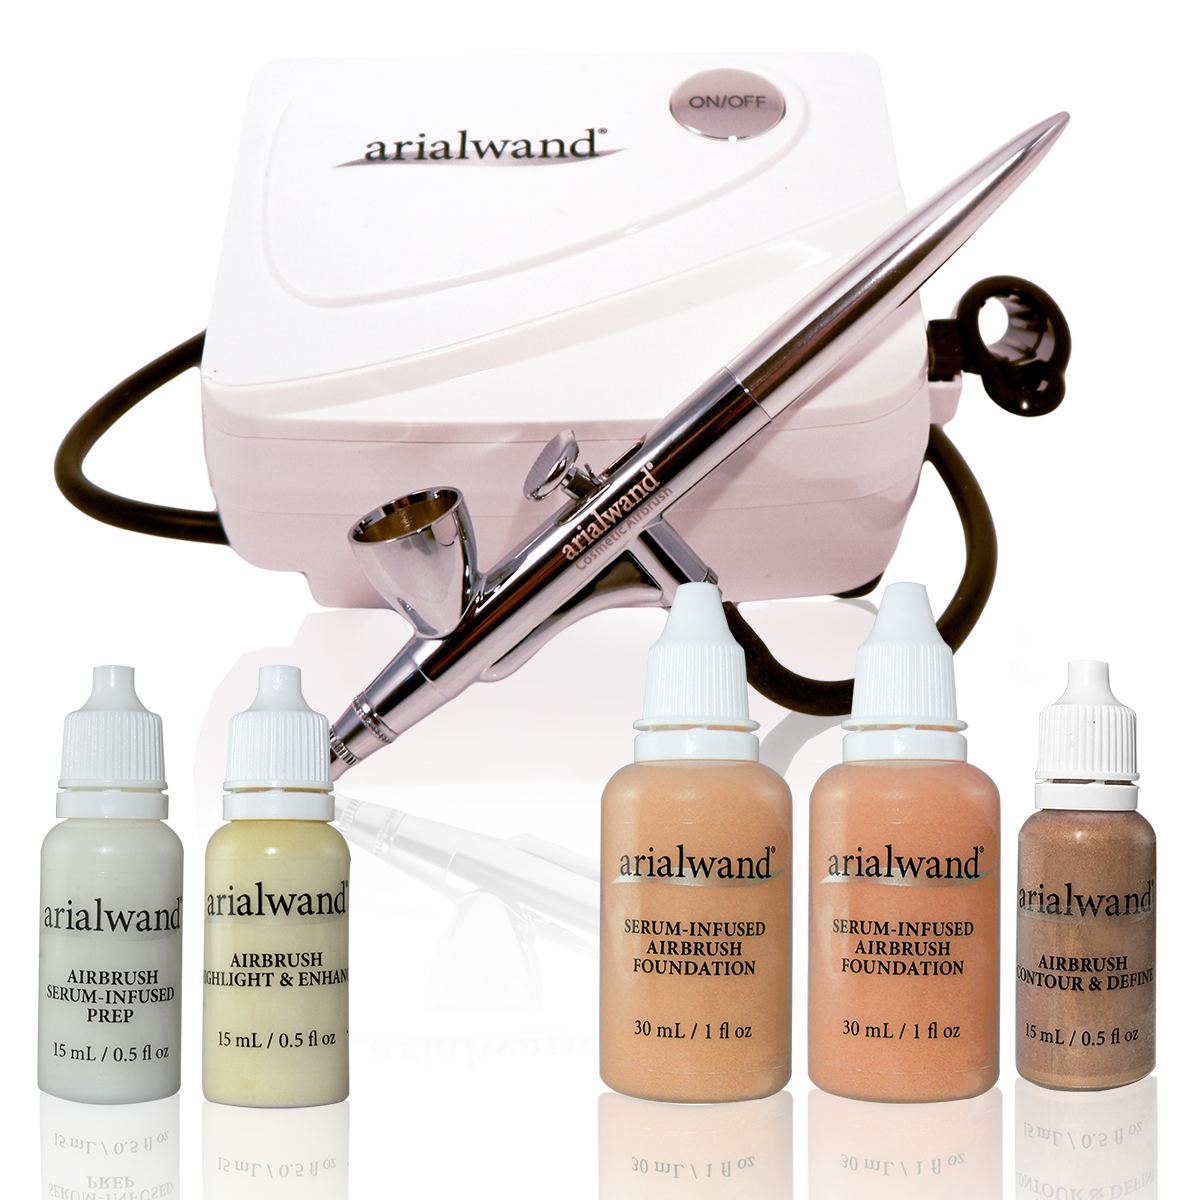 Arialwand Airbrush Makeup Kit - Essential System - MEDIUM + 2 Free Gifts